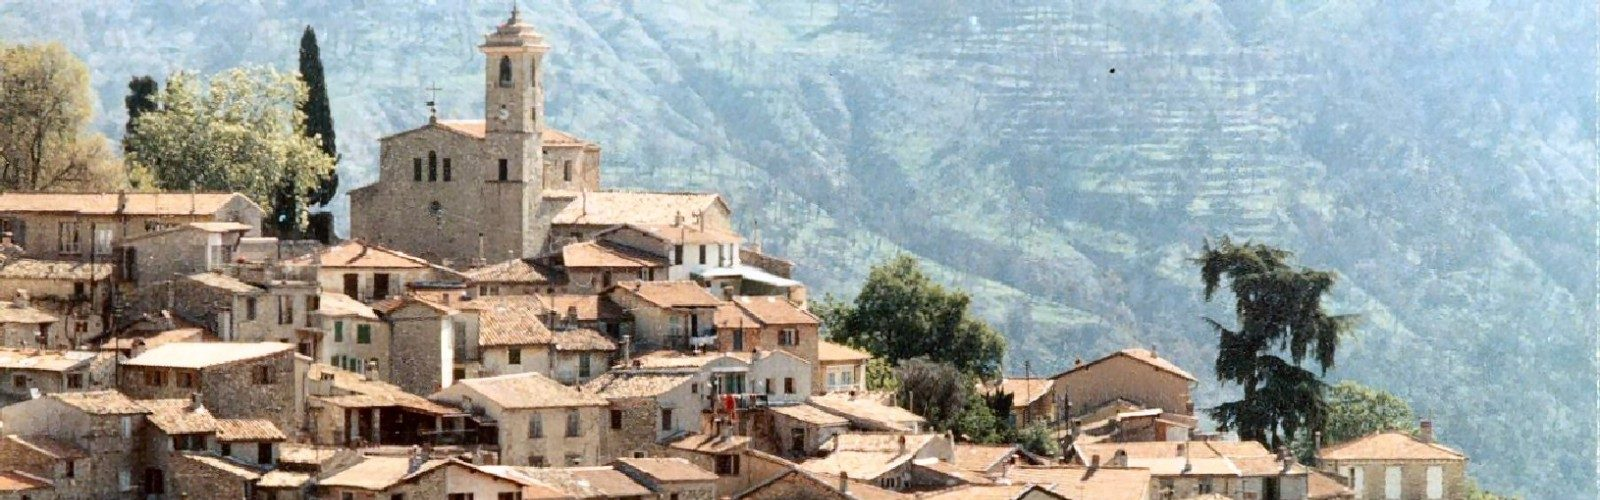 Coaraze – l'un des plus beaux villages de France